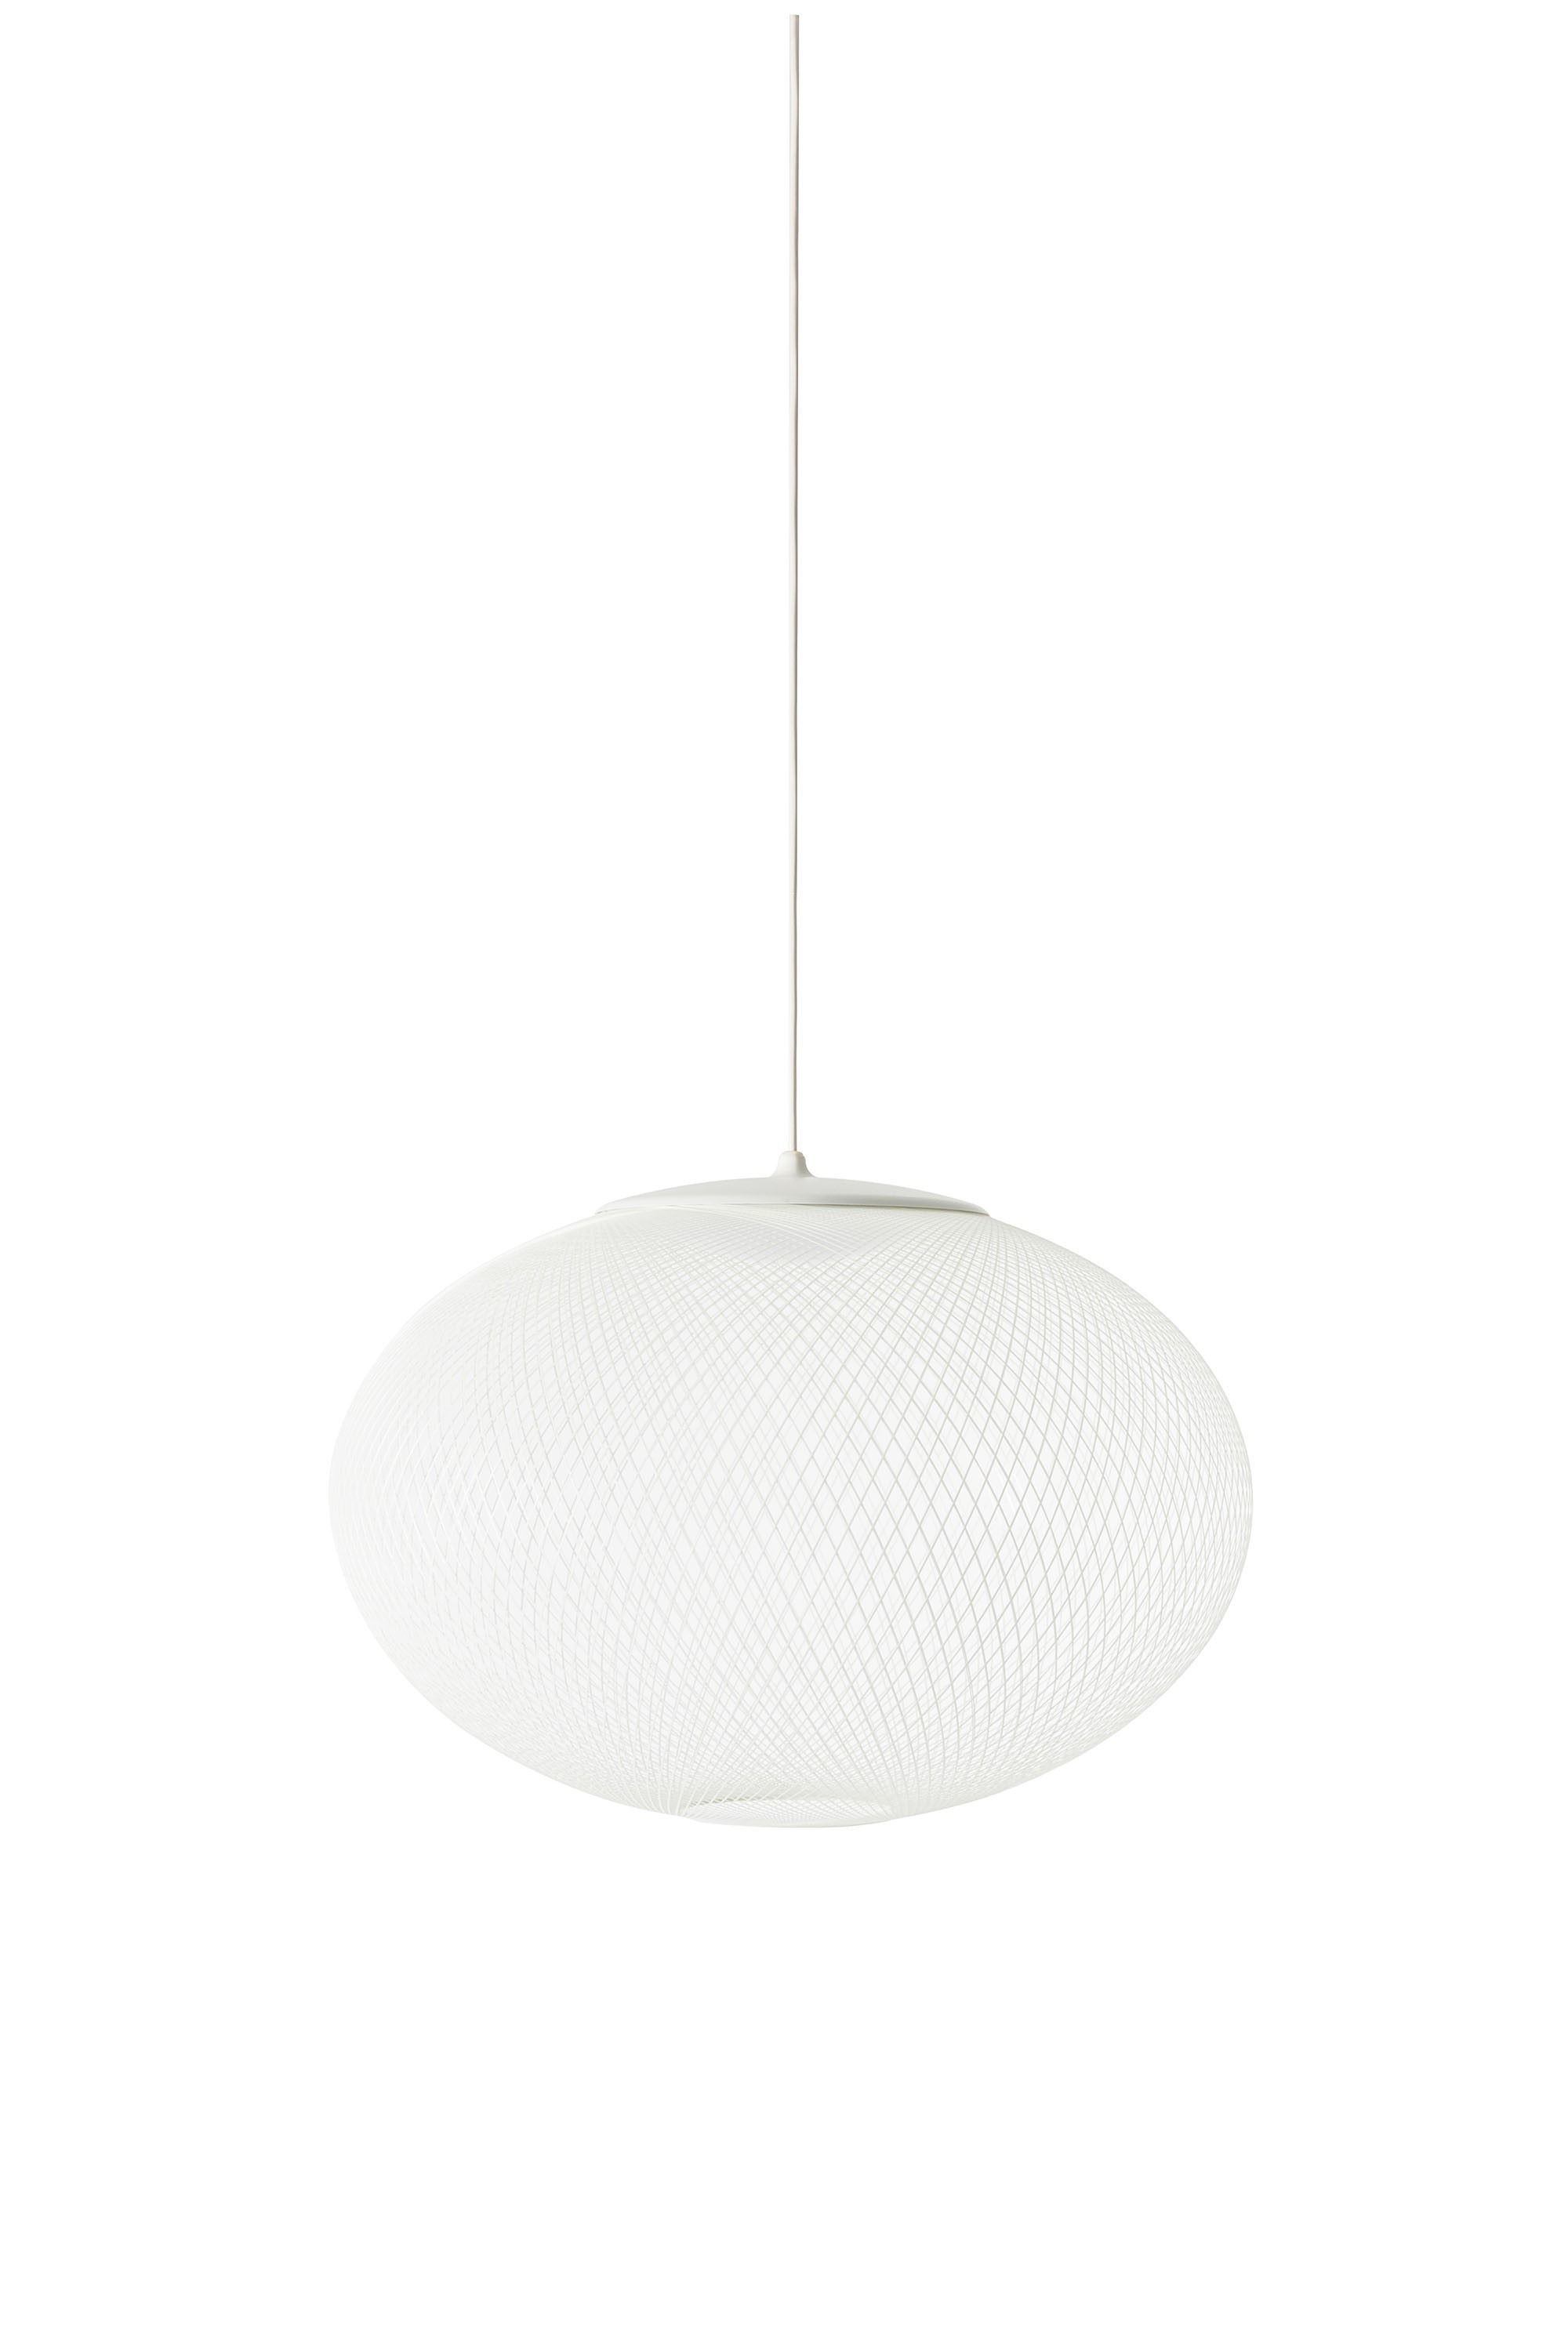 Moooi NR2 Medium Suspension Lamp